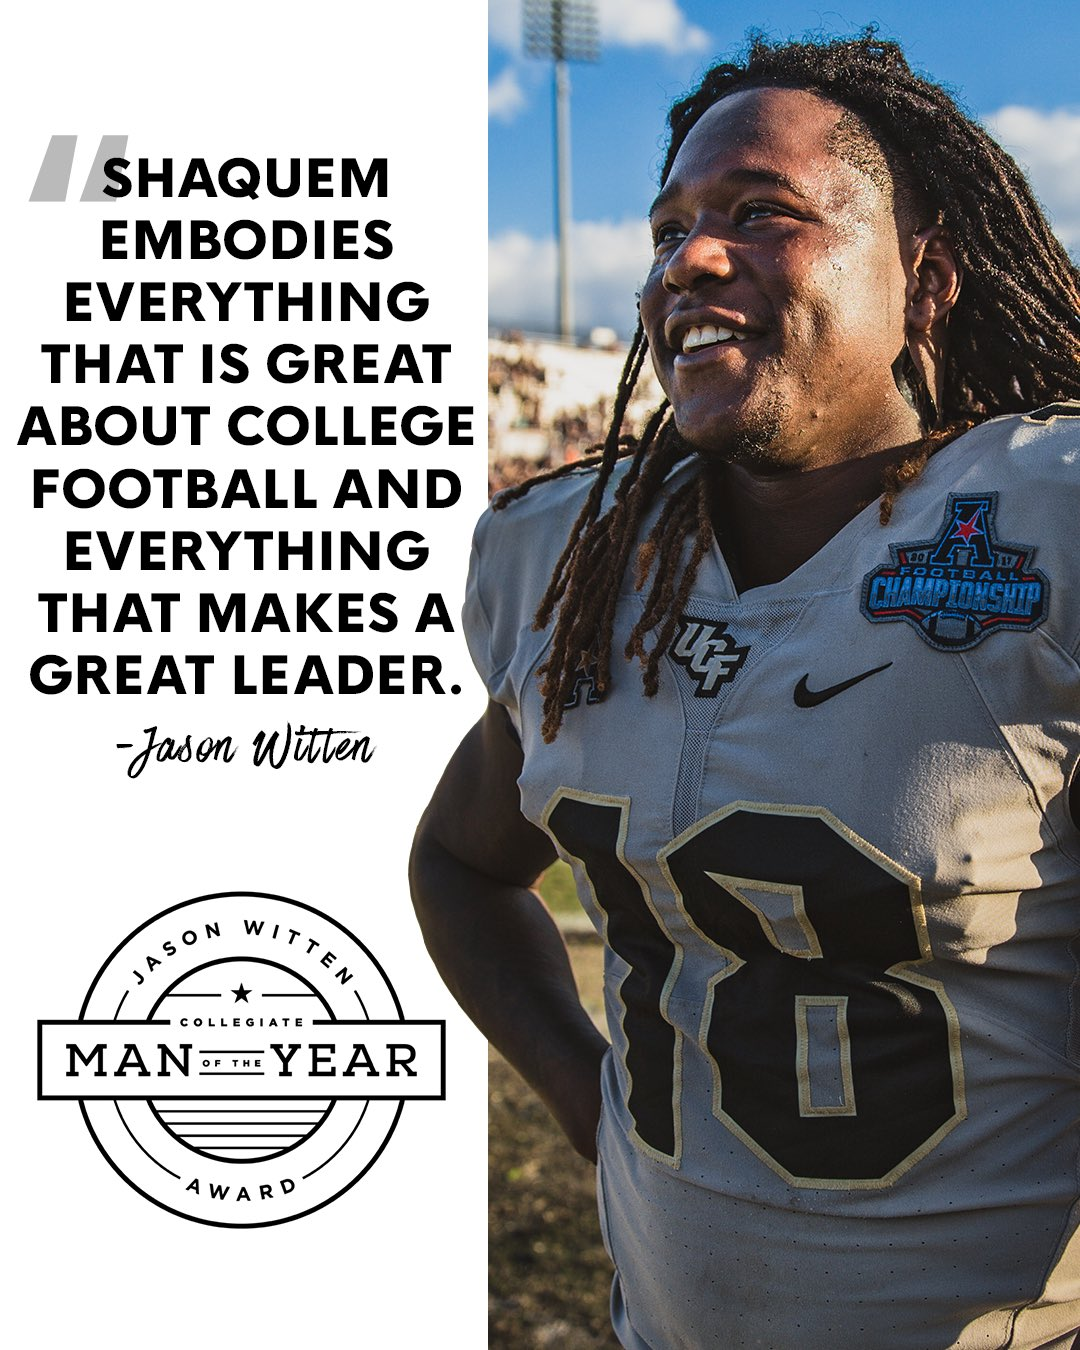 Your @JasonWitten Collegiate Man of the Year: @Shaquemgriffin!  #BuiltByUCF https://t.co/IFP3yAvUg8